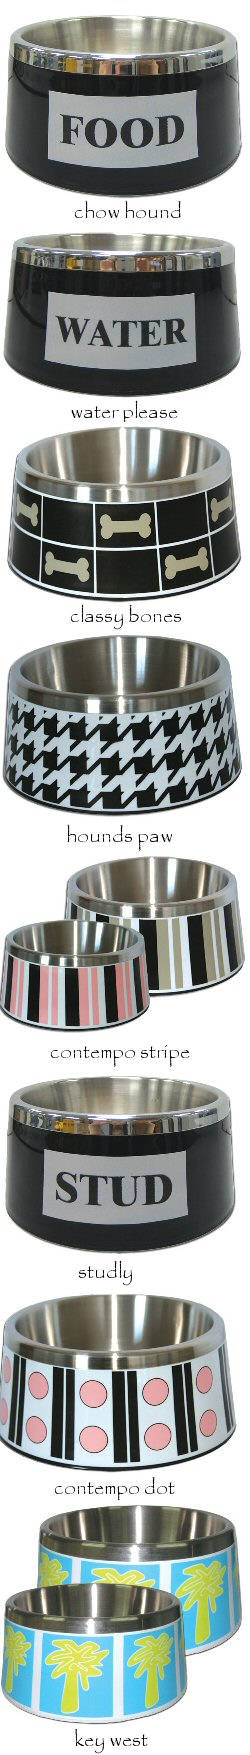 Decorative Stainless Steel Bowls